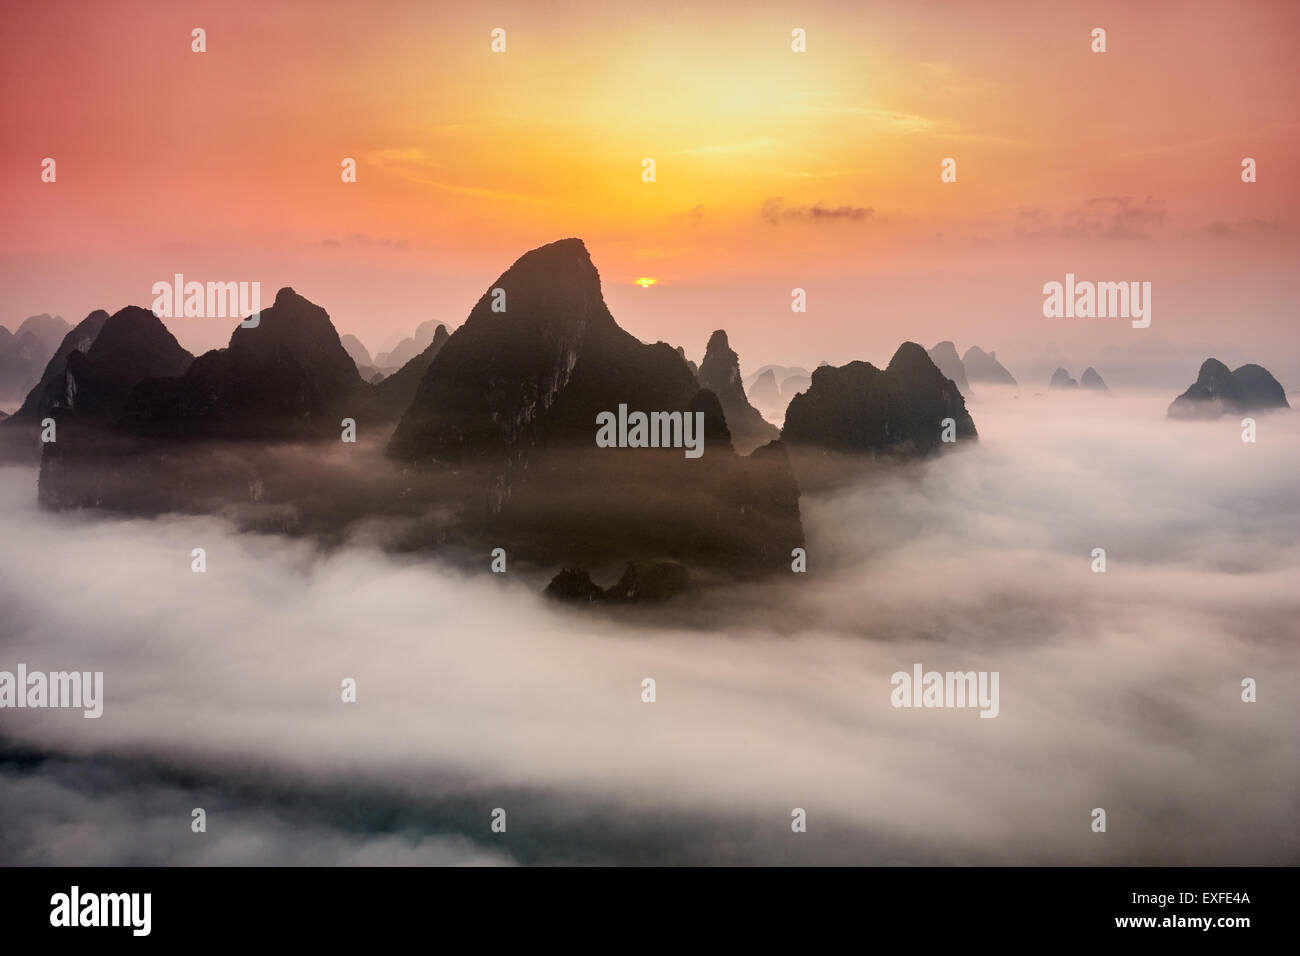 Guilin, China Karst mountains. - Stock Image